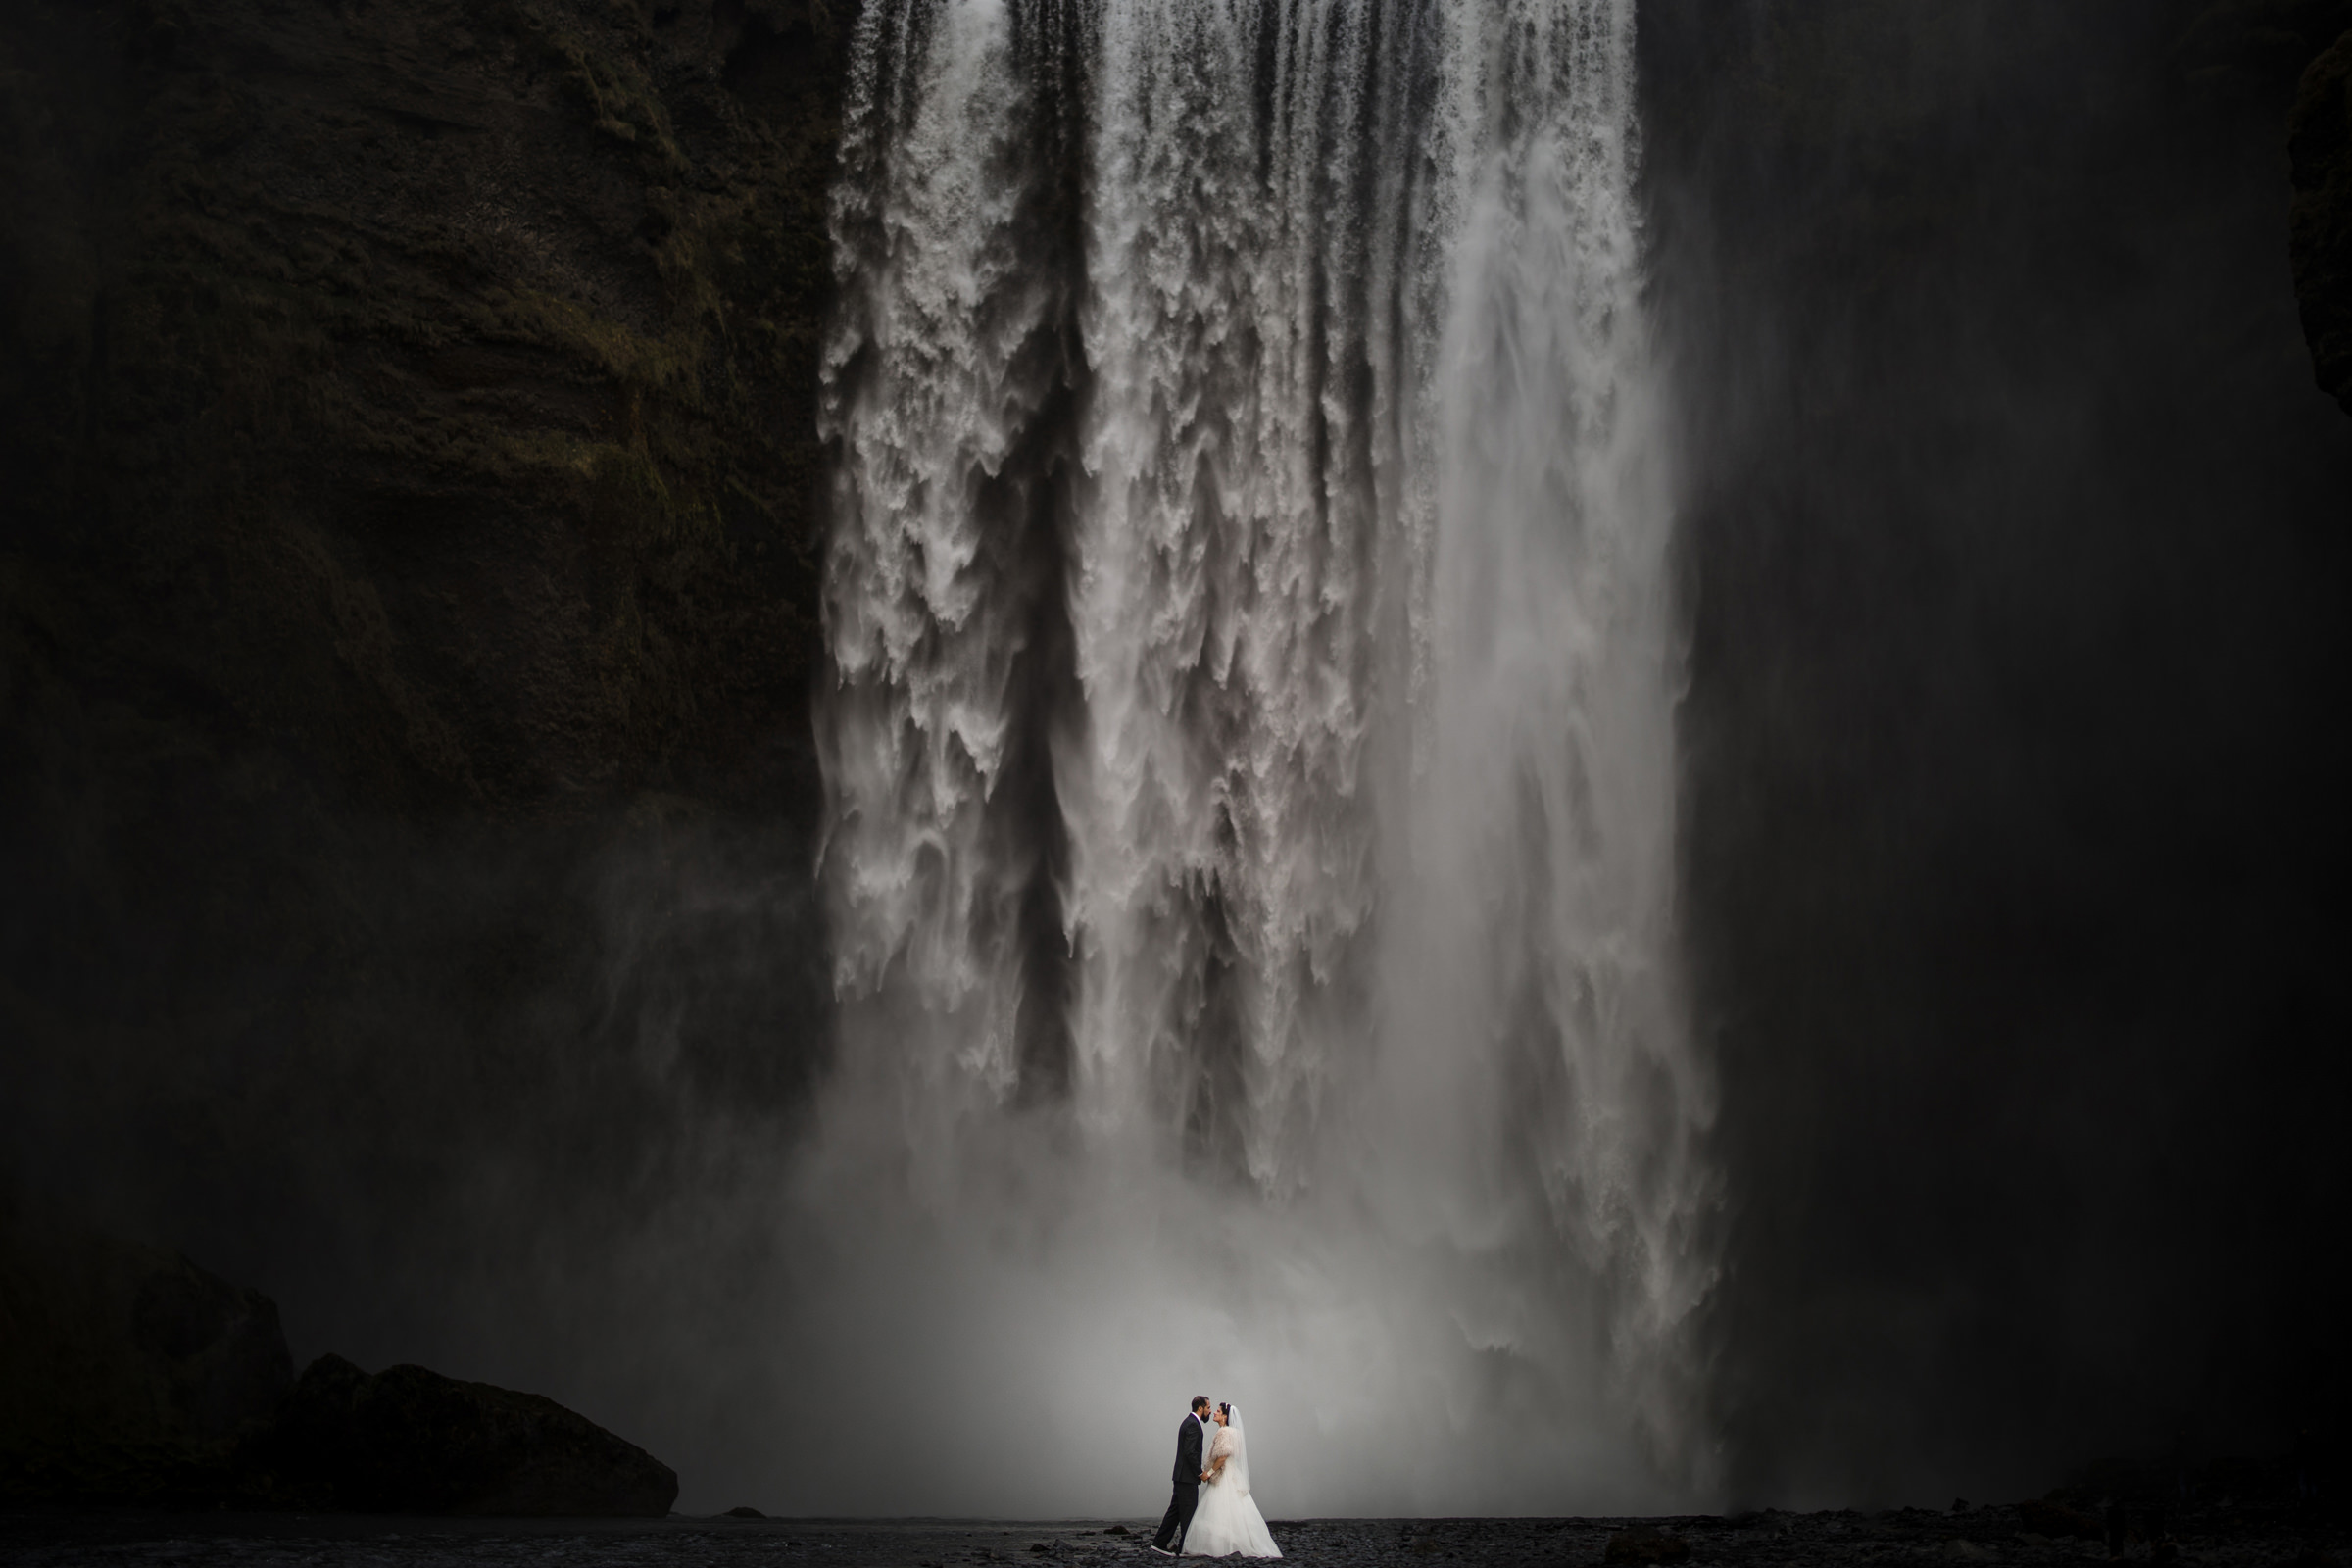 Bride and groom in front of dramatic waterfall - Photo by Susan Stripling Photography